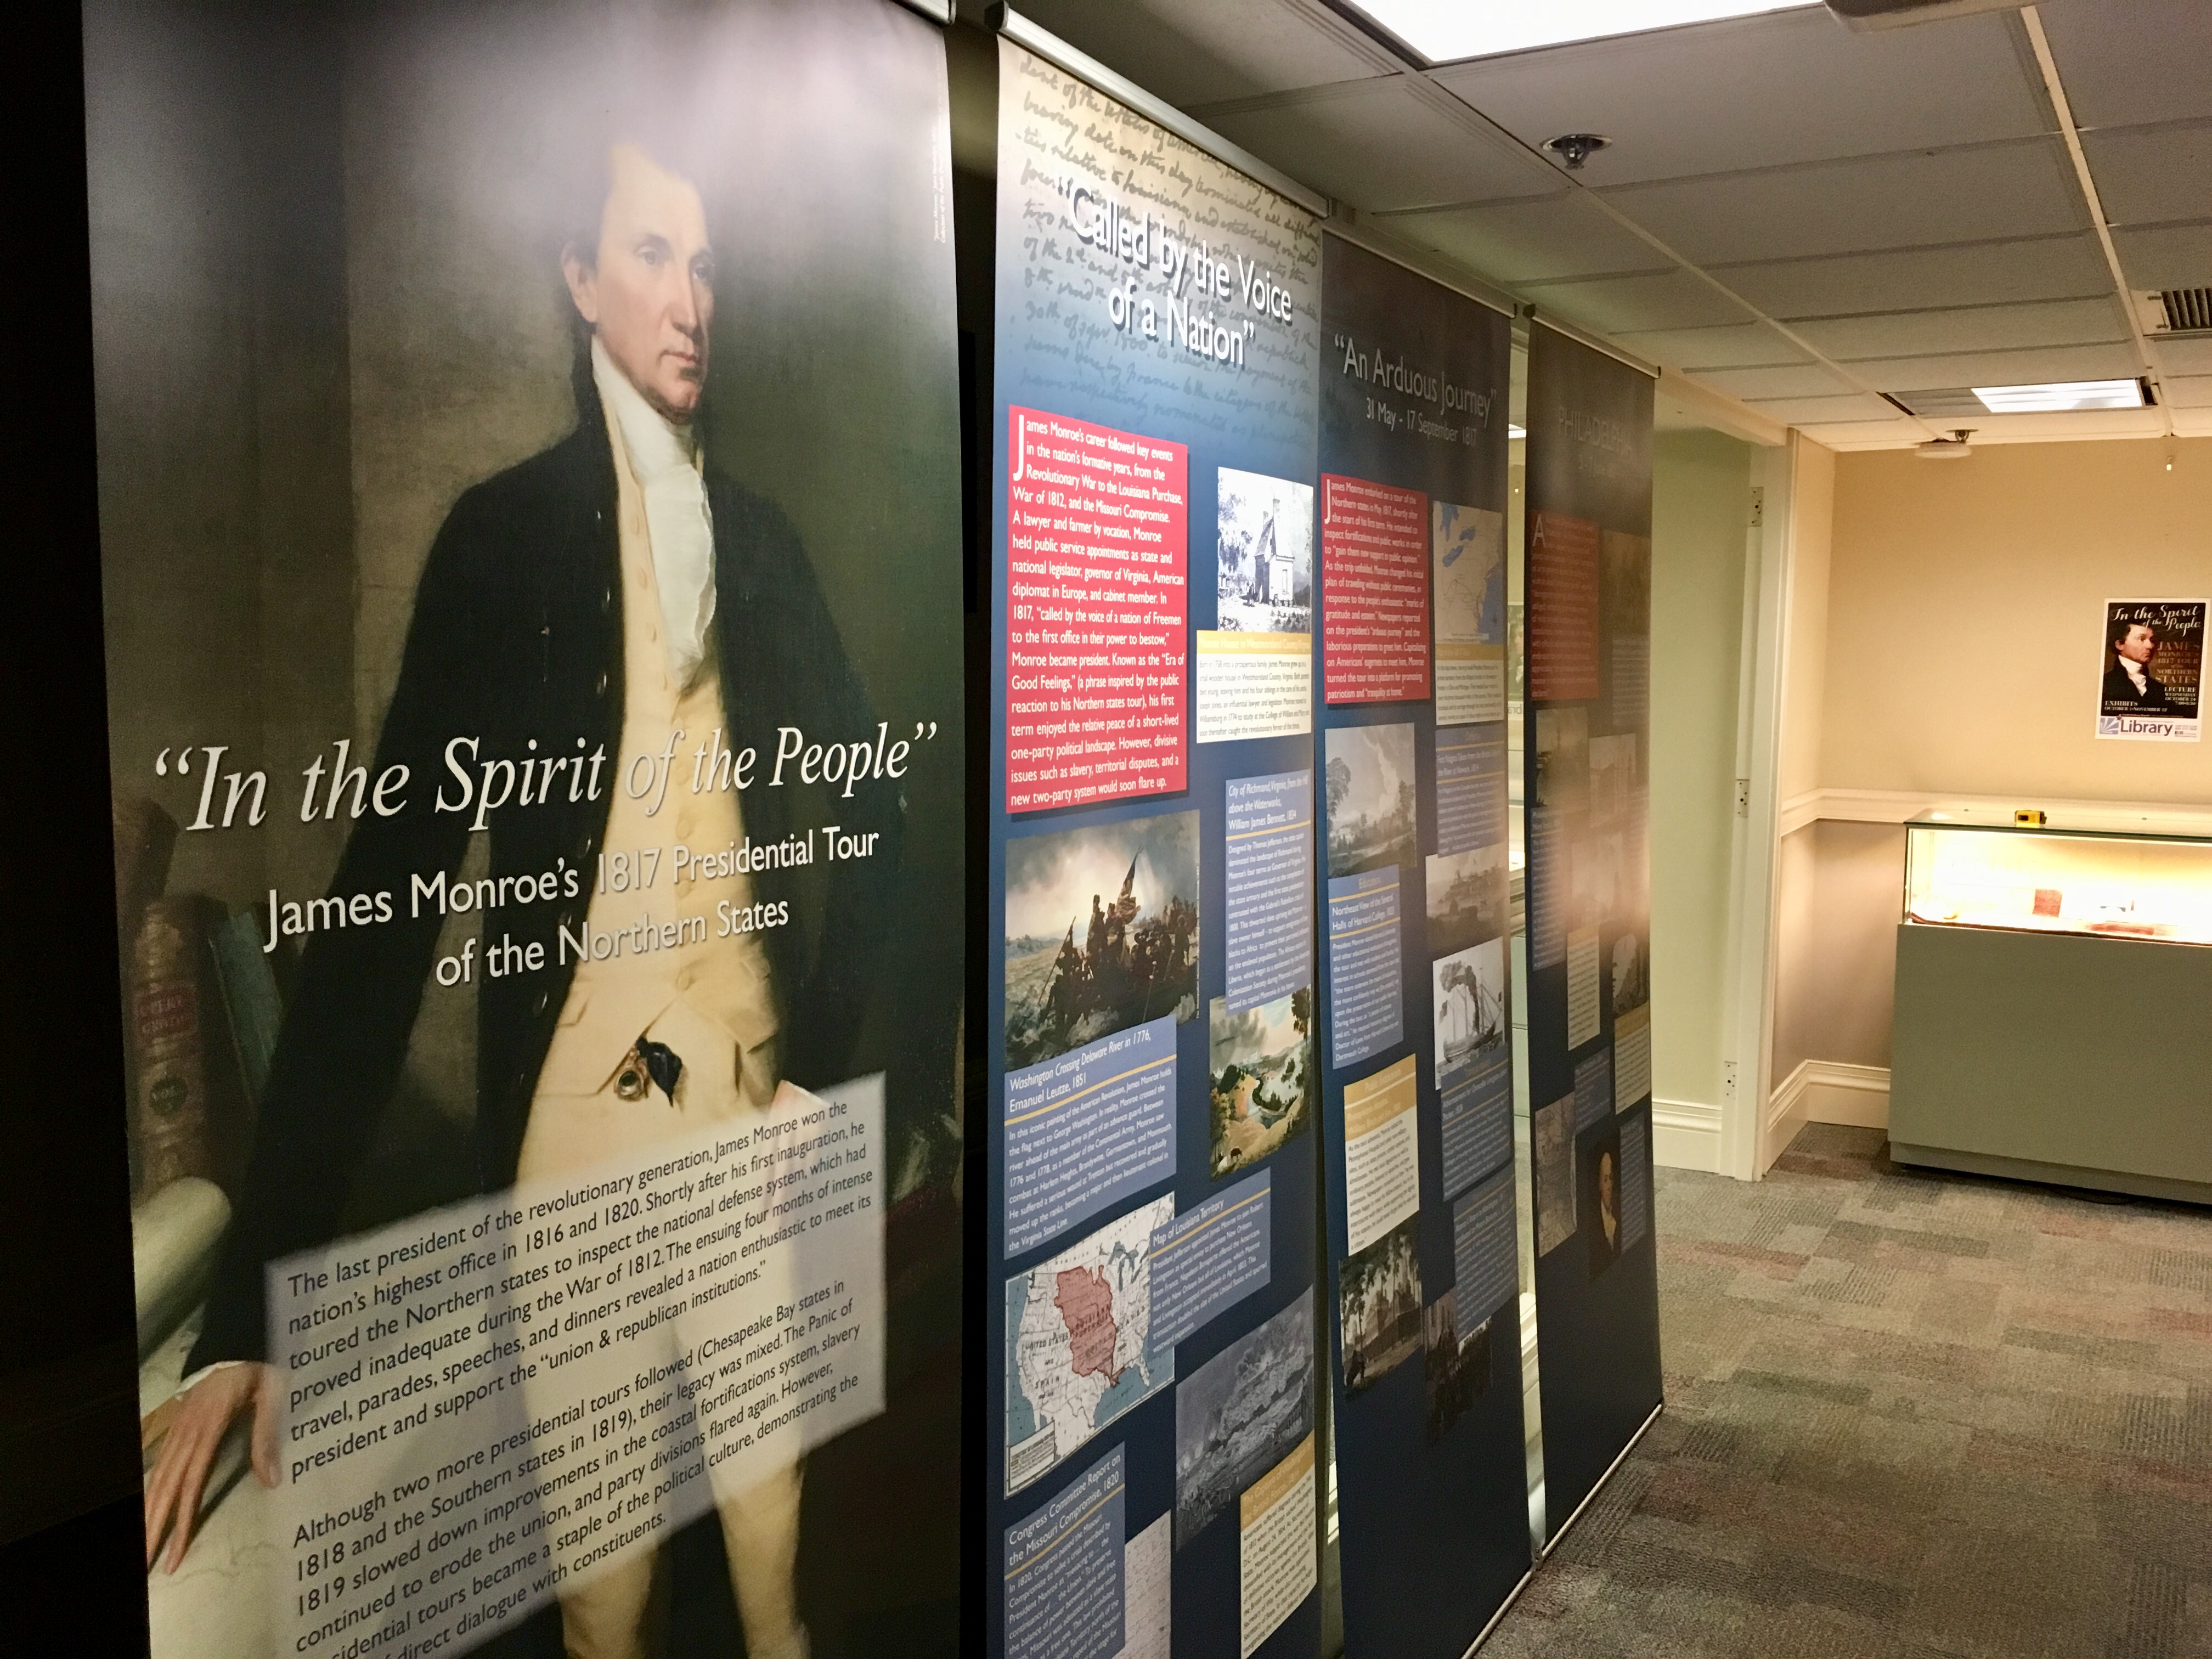 James Monroe exhibit and lecture this month at downtown